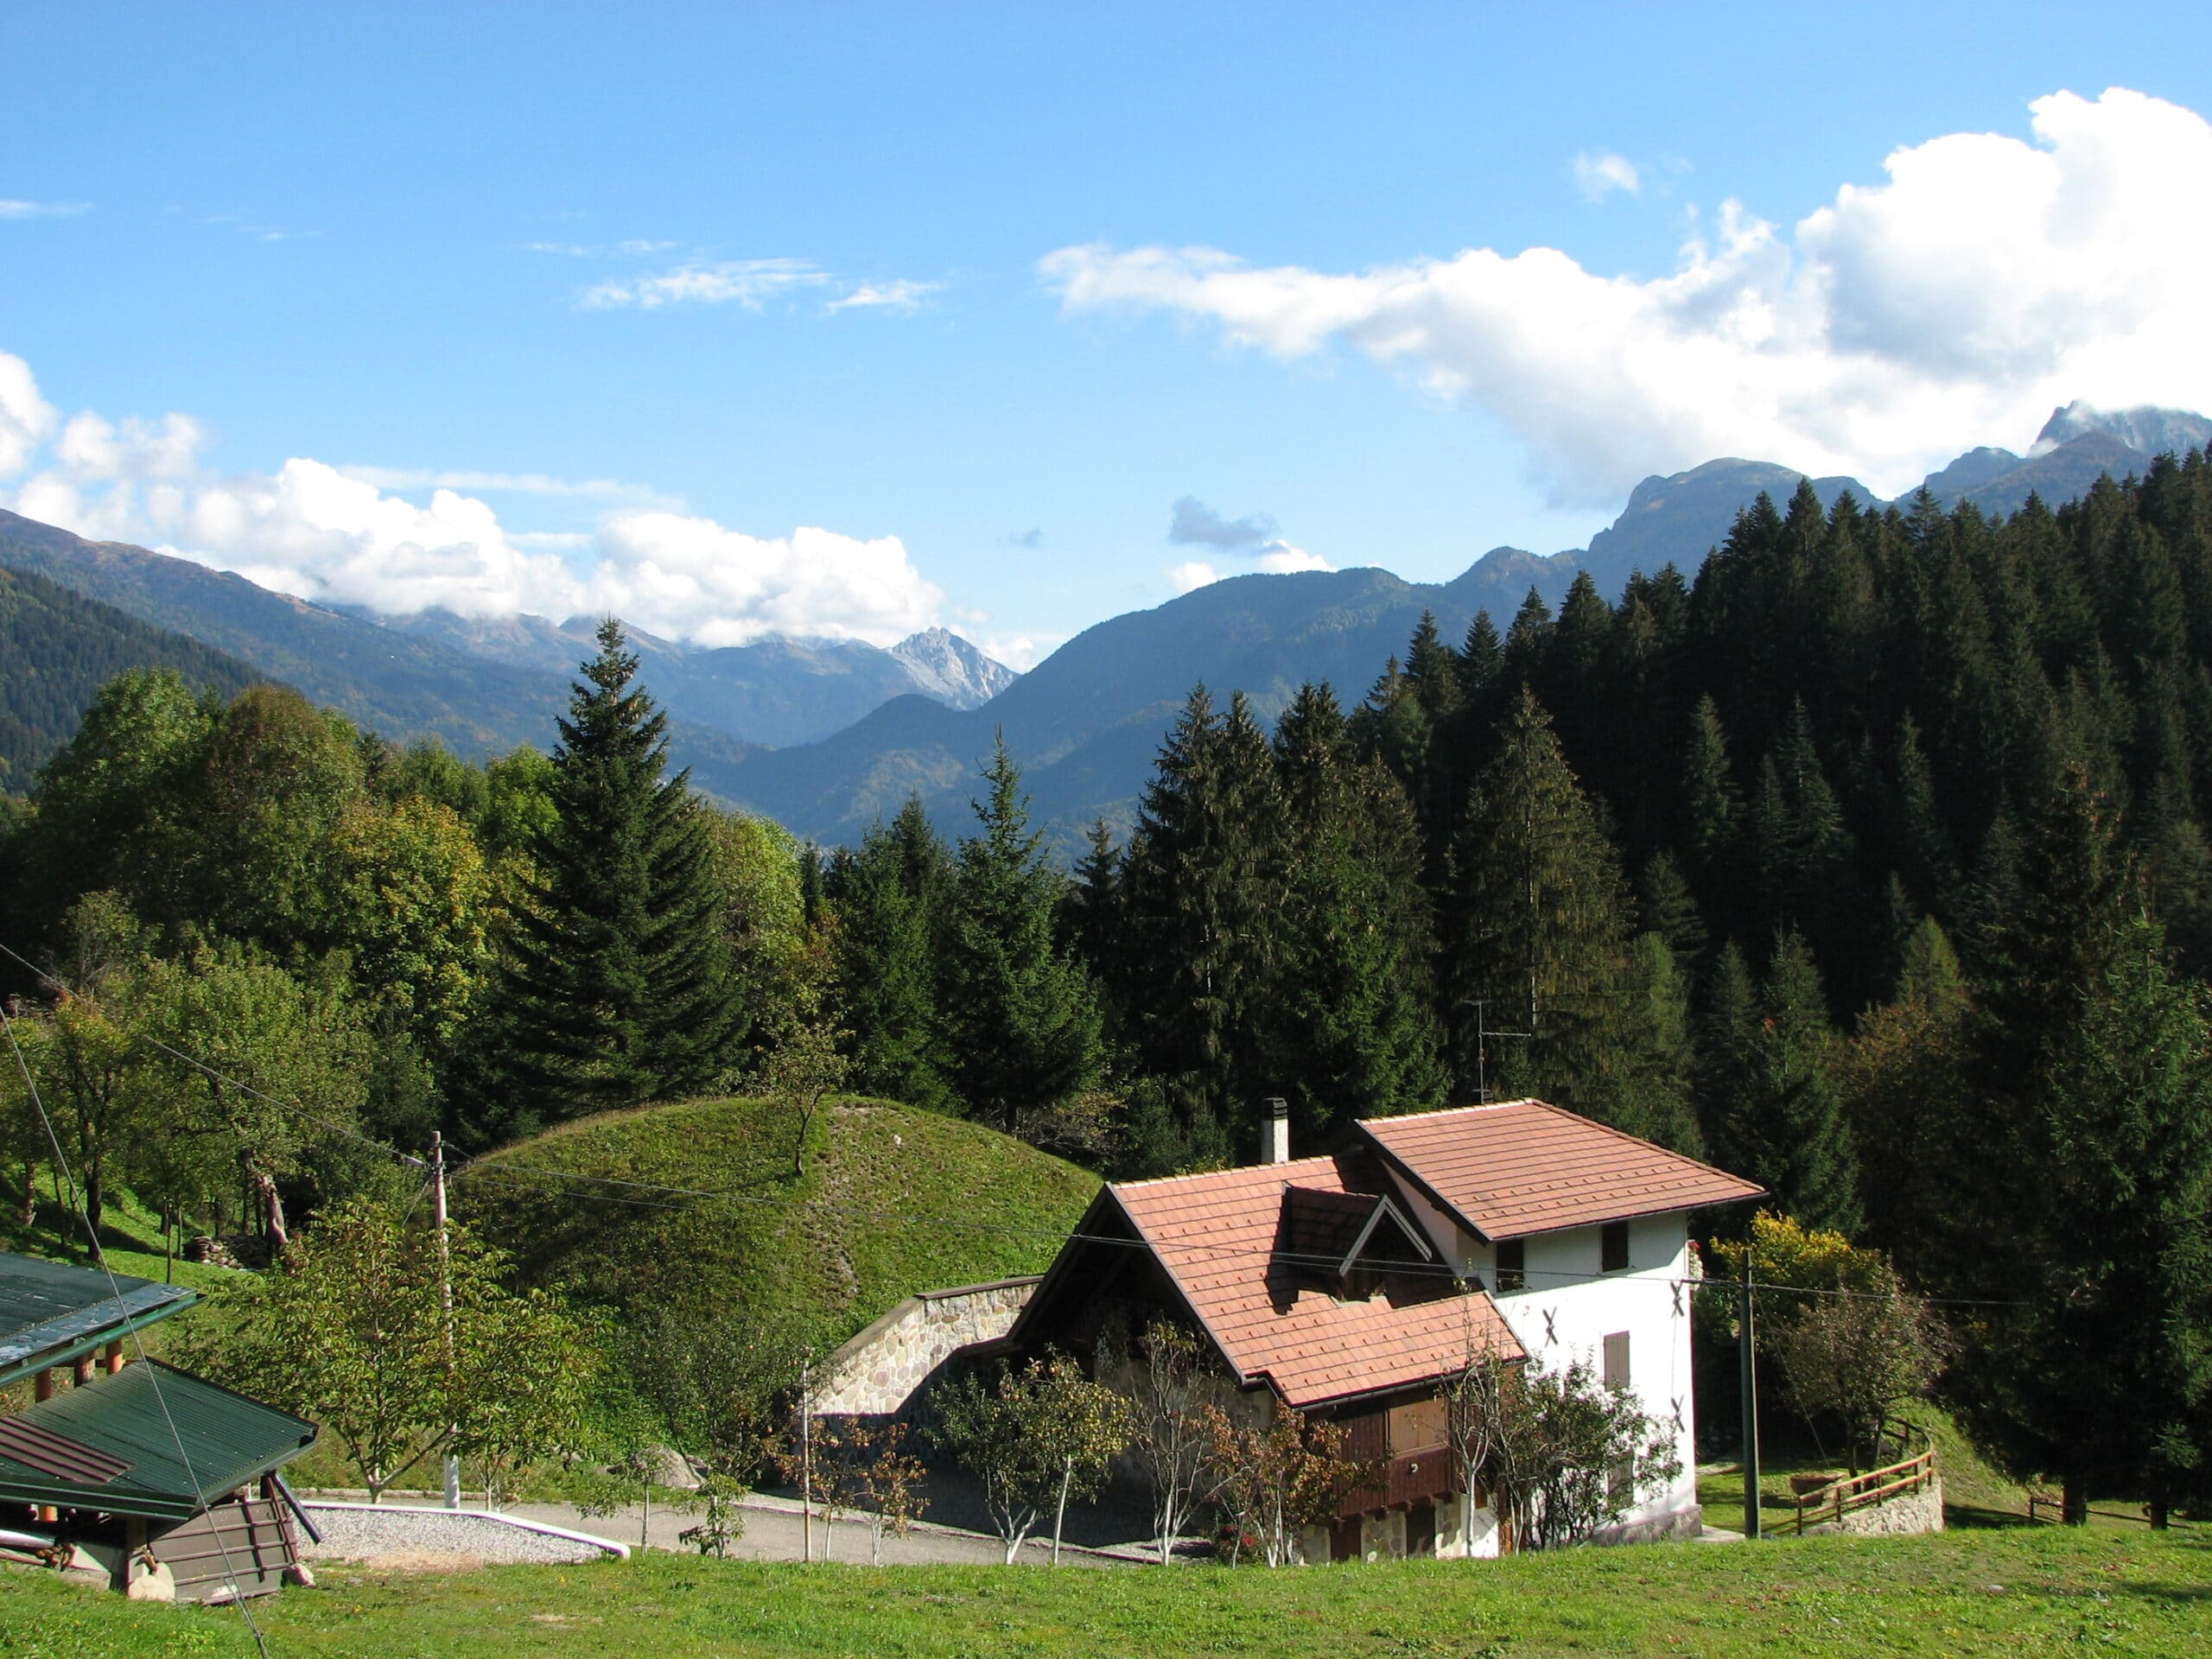 Sauris situated within the Carnia mountain area of Friuli